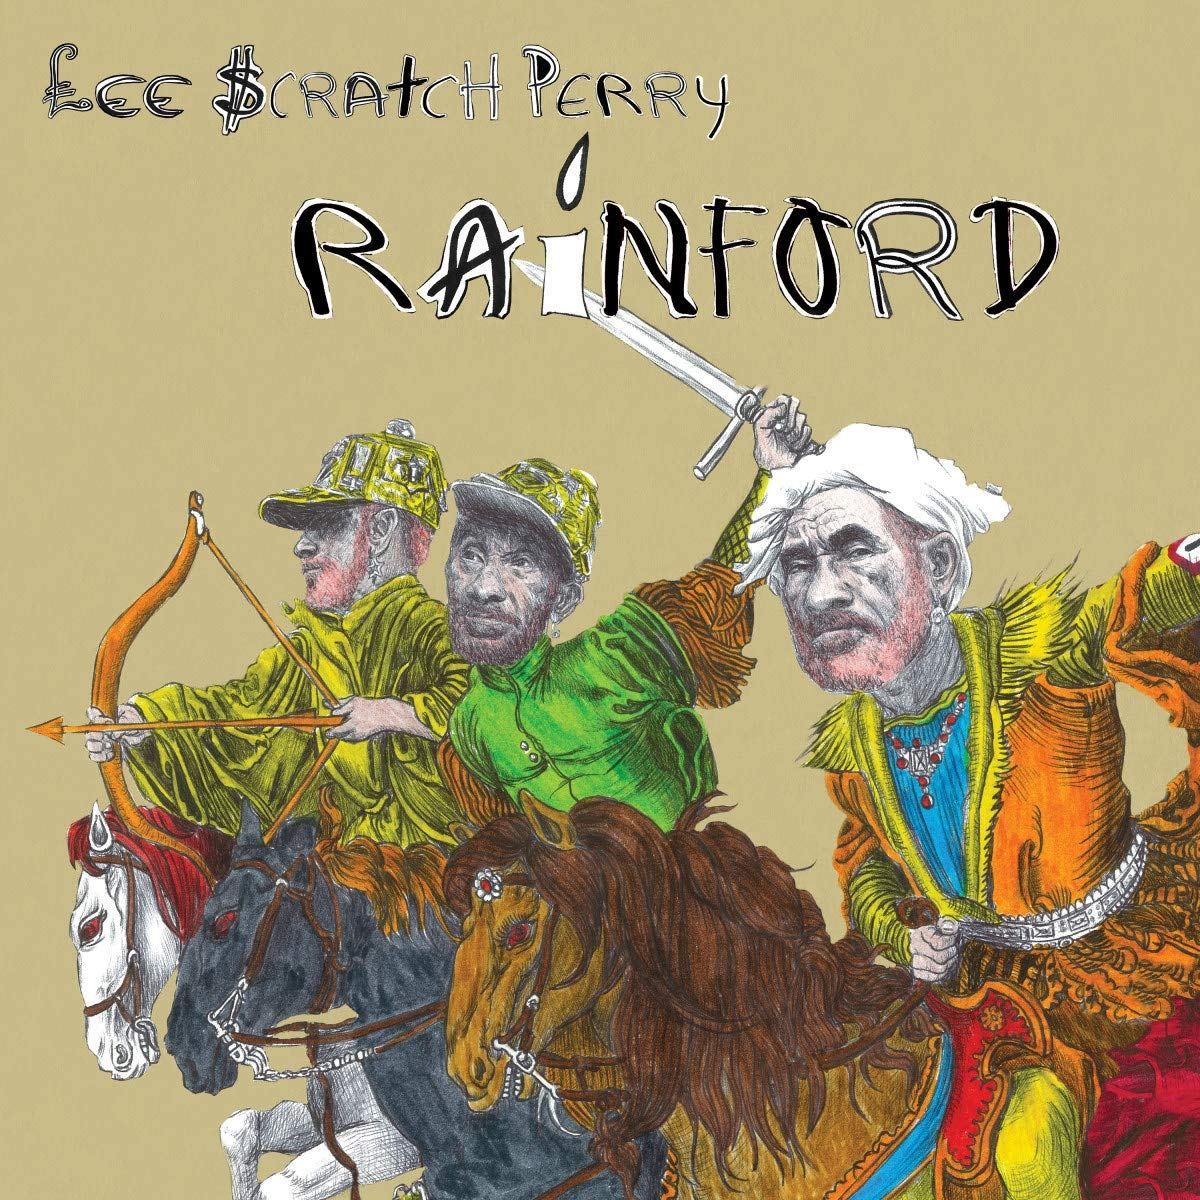 Buy Lee 'Scratch' Perry - Rainford New or Used via Amazon